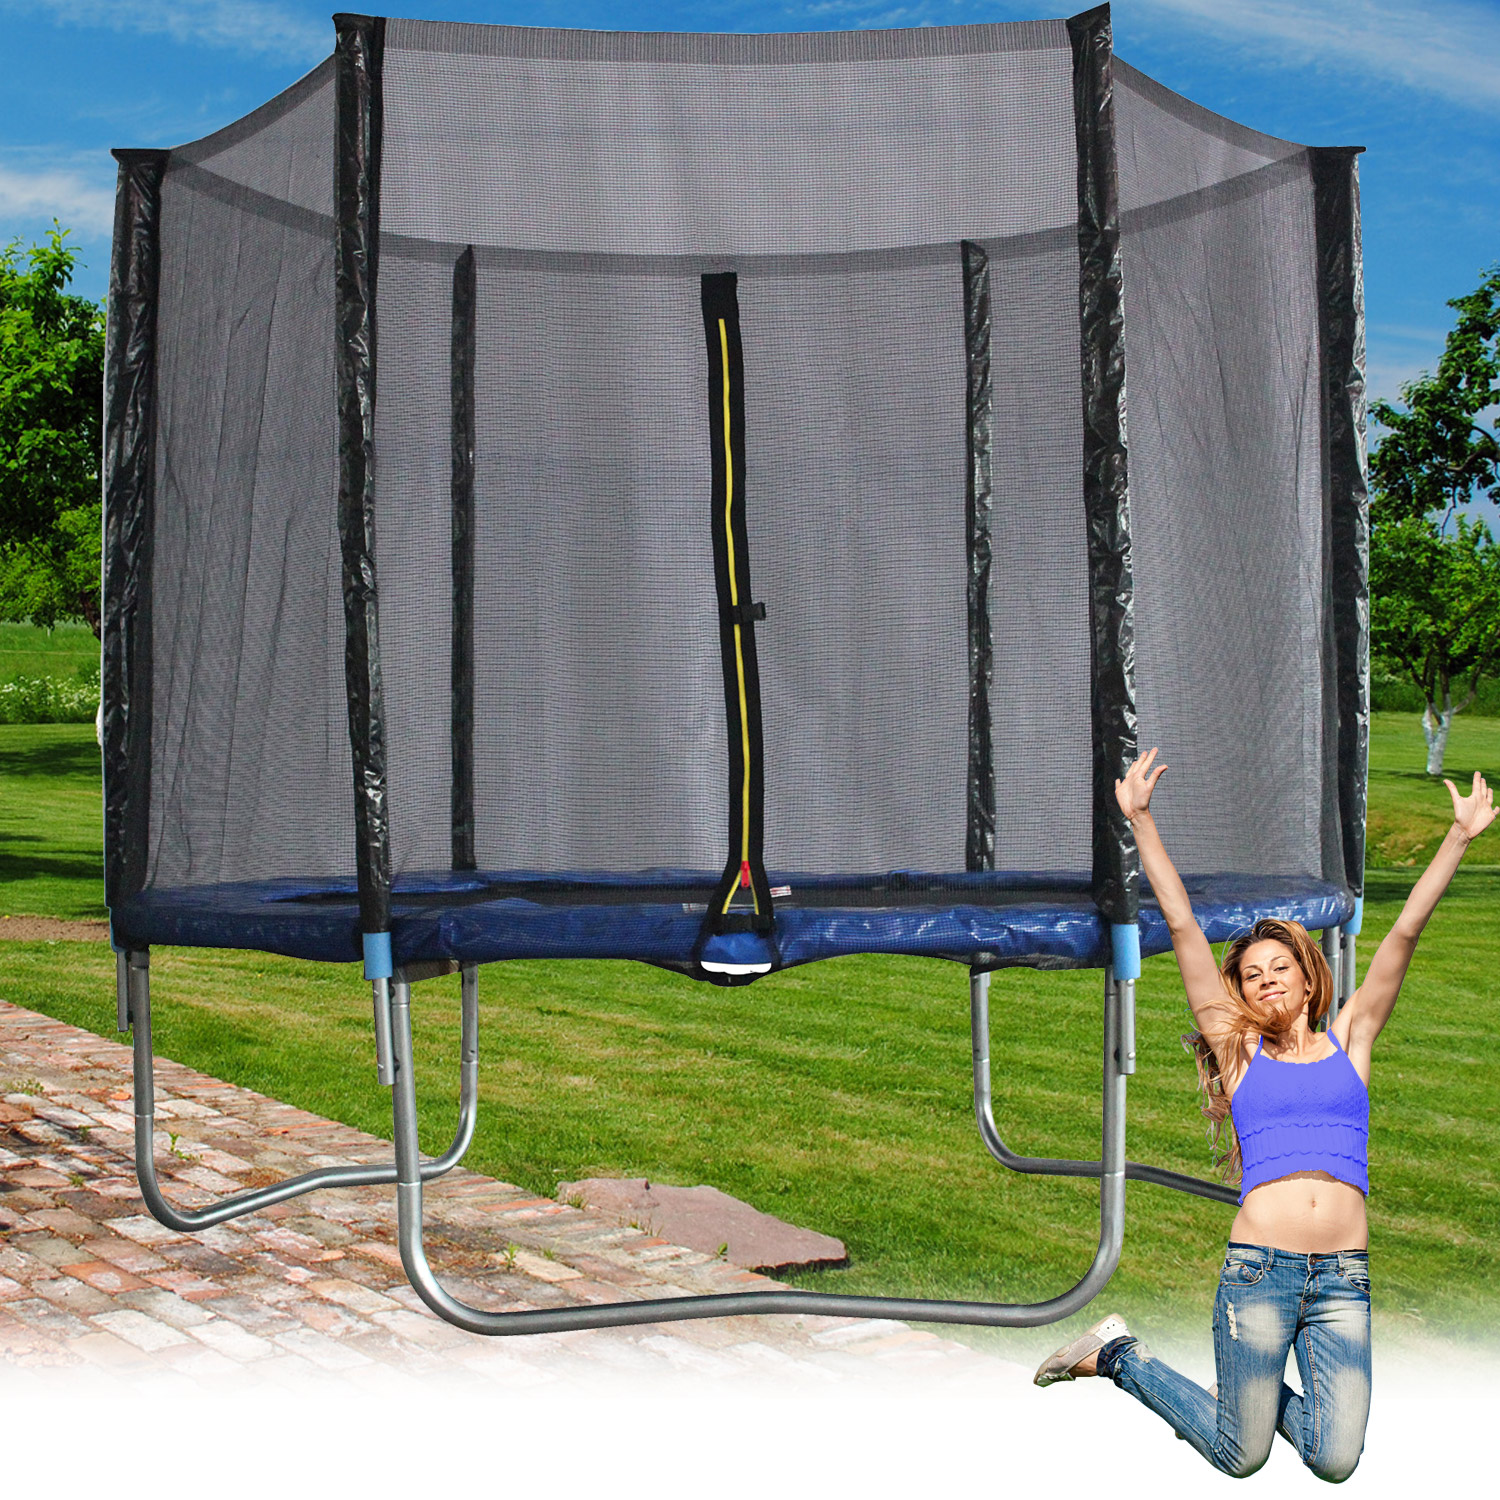 trampolin 244 cm mit netz sicherheitsnetz gartentrampolin f r kinder 8ft blau ebay. Black Bedroom Furniture Sets. Home Design Ideas